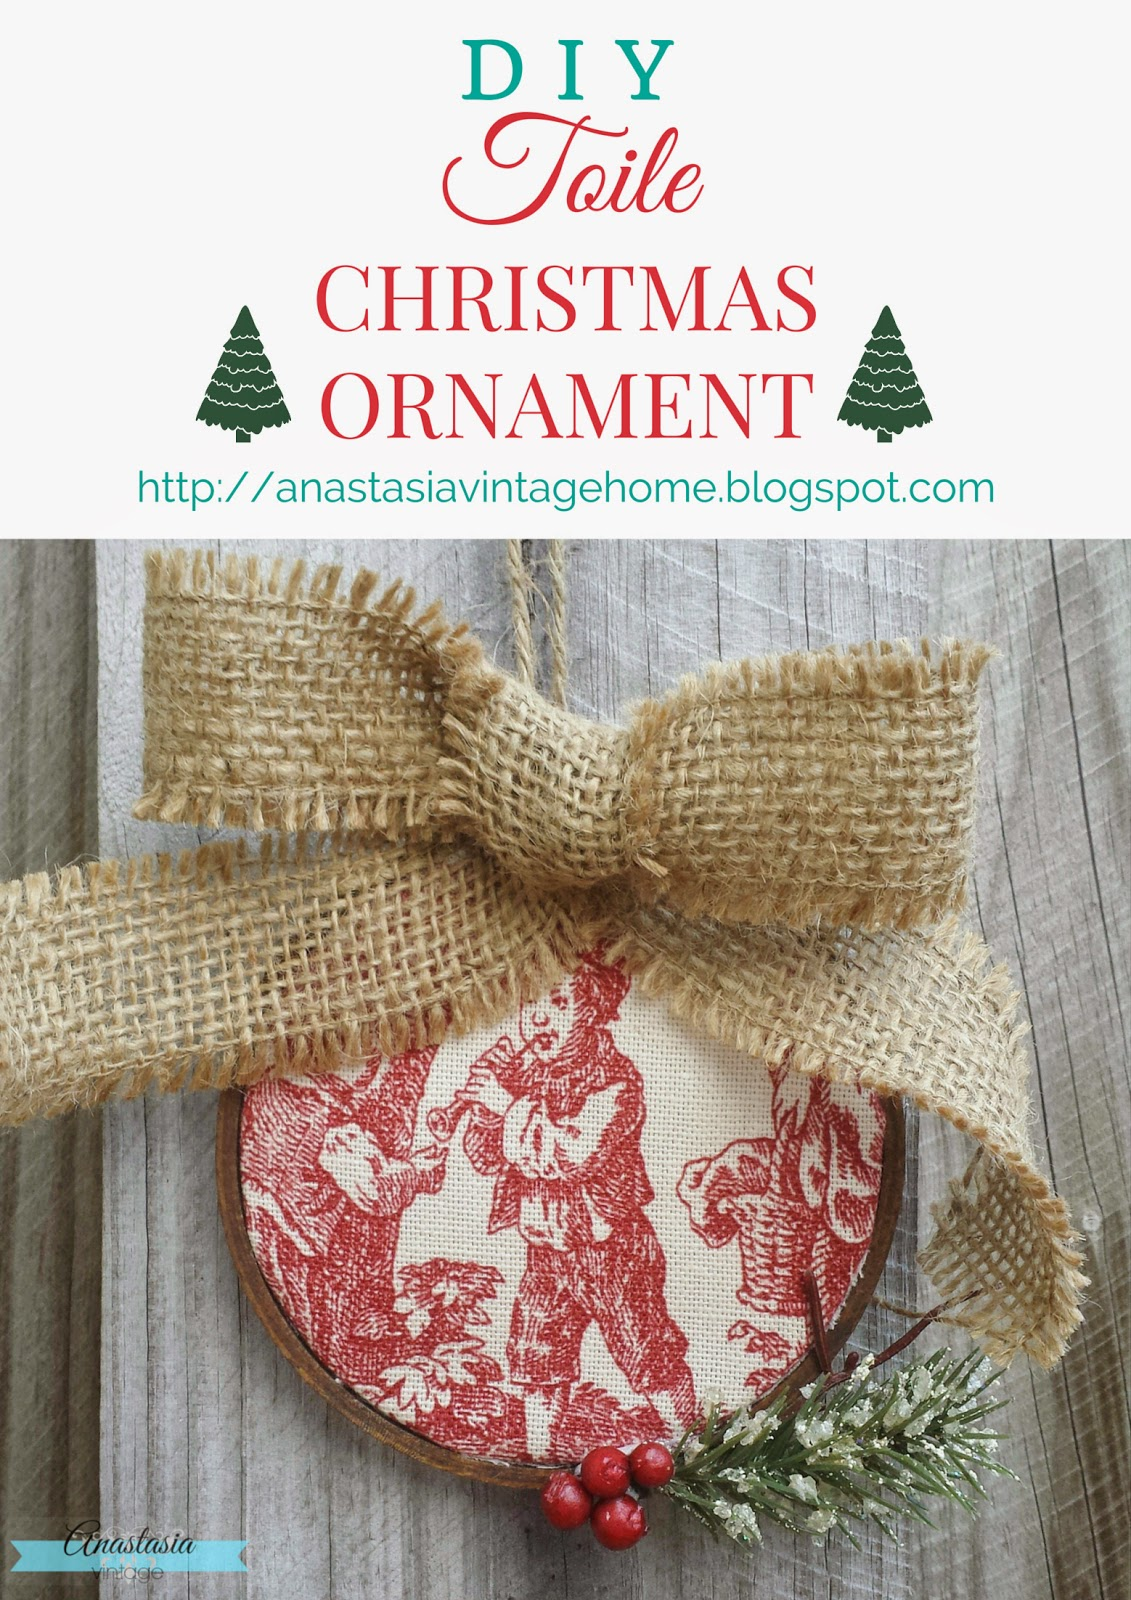 DIY Toile Christmas Ornament | Anastasia Vintage